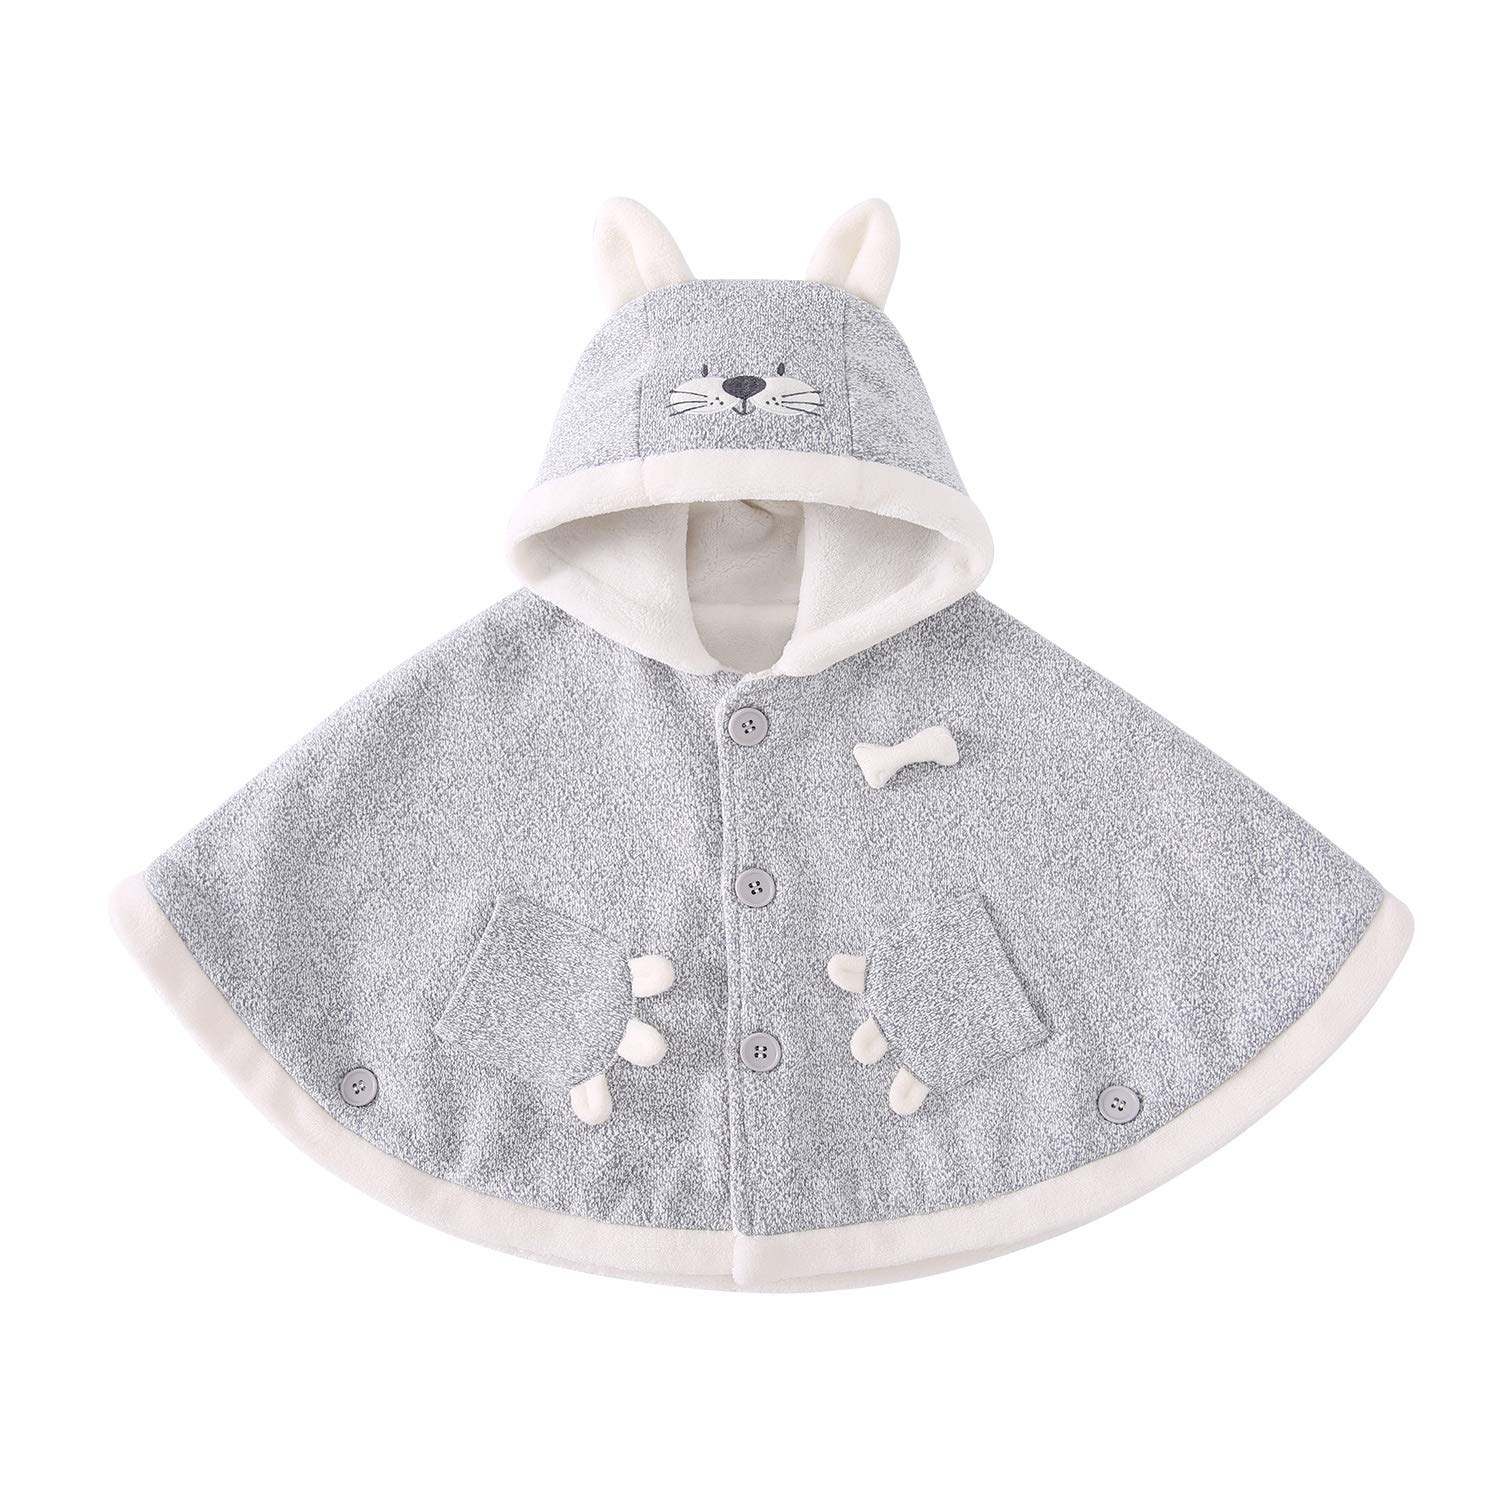 pureborn Infant Boys Cartoon Cat Hooded Carseat Poncho Fleece Cloak Winter Outfit Gray 0-1 Year by pureborn